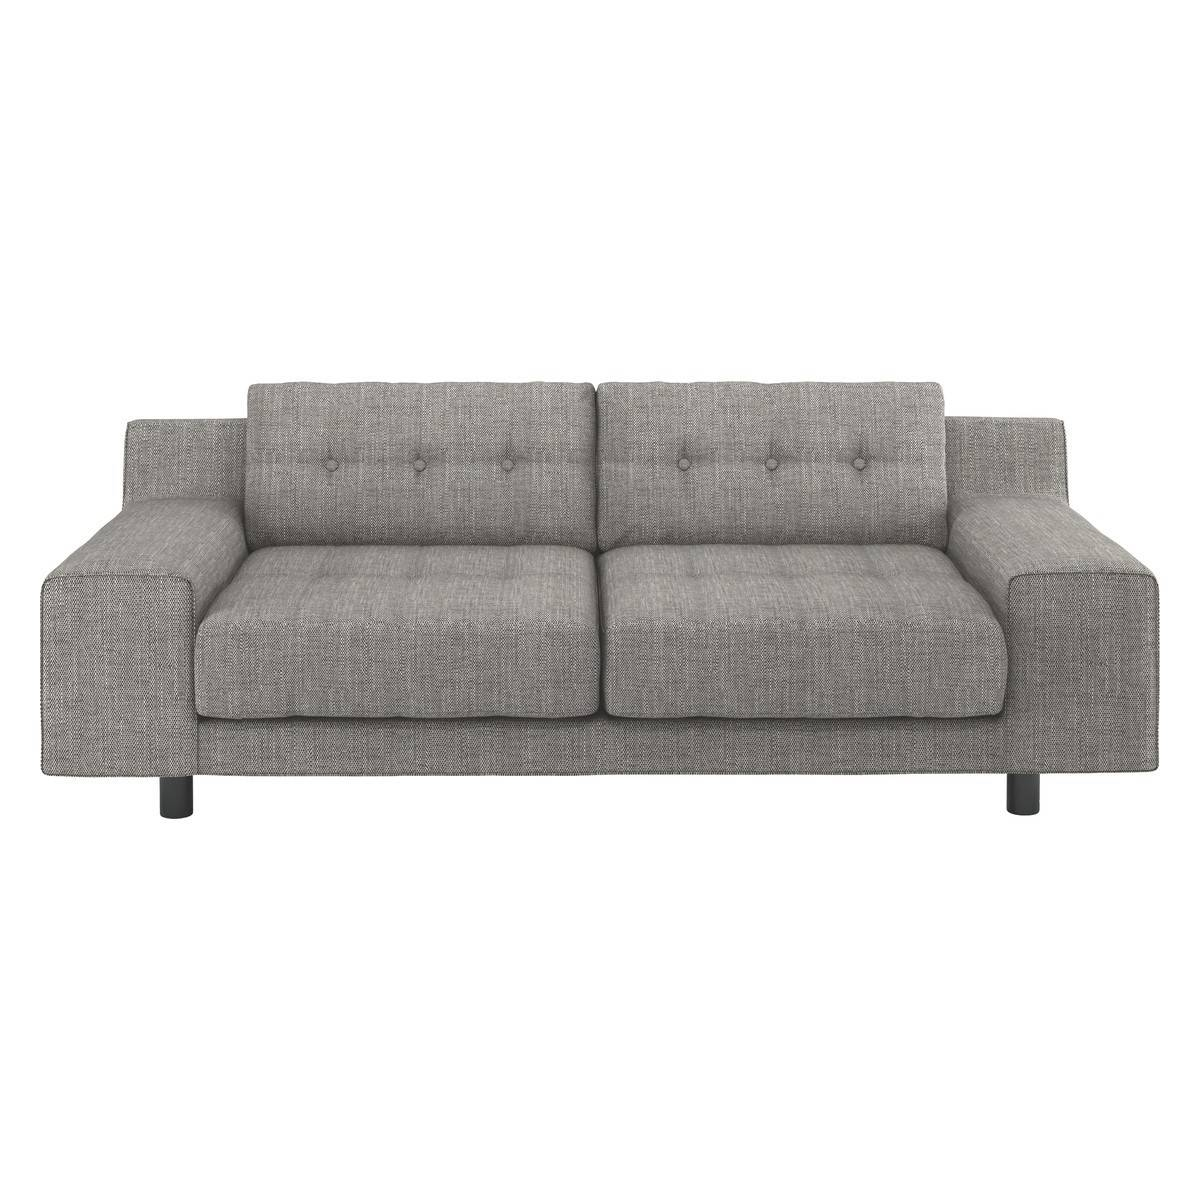 Sofas Center : Small Seater Sofas Heals Uk For Spacessmall Uksmall Pertaining To Small 2 Seater Sofas (View 26 of 30)